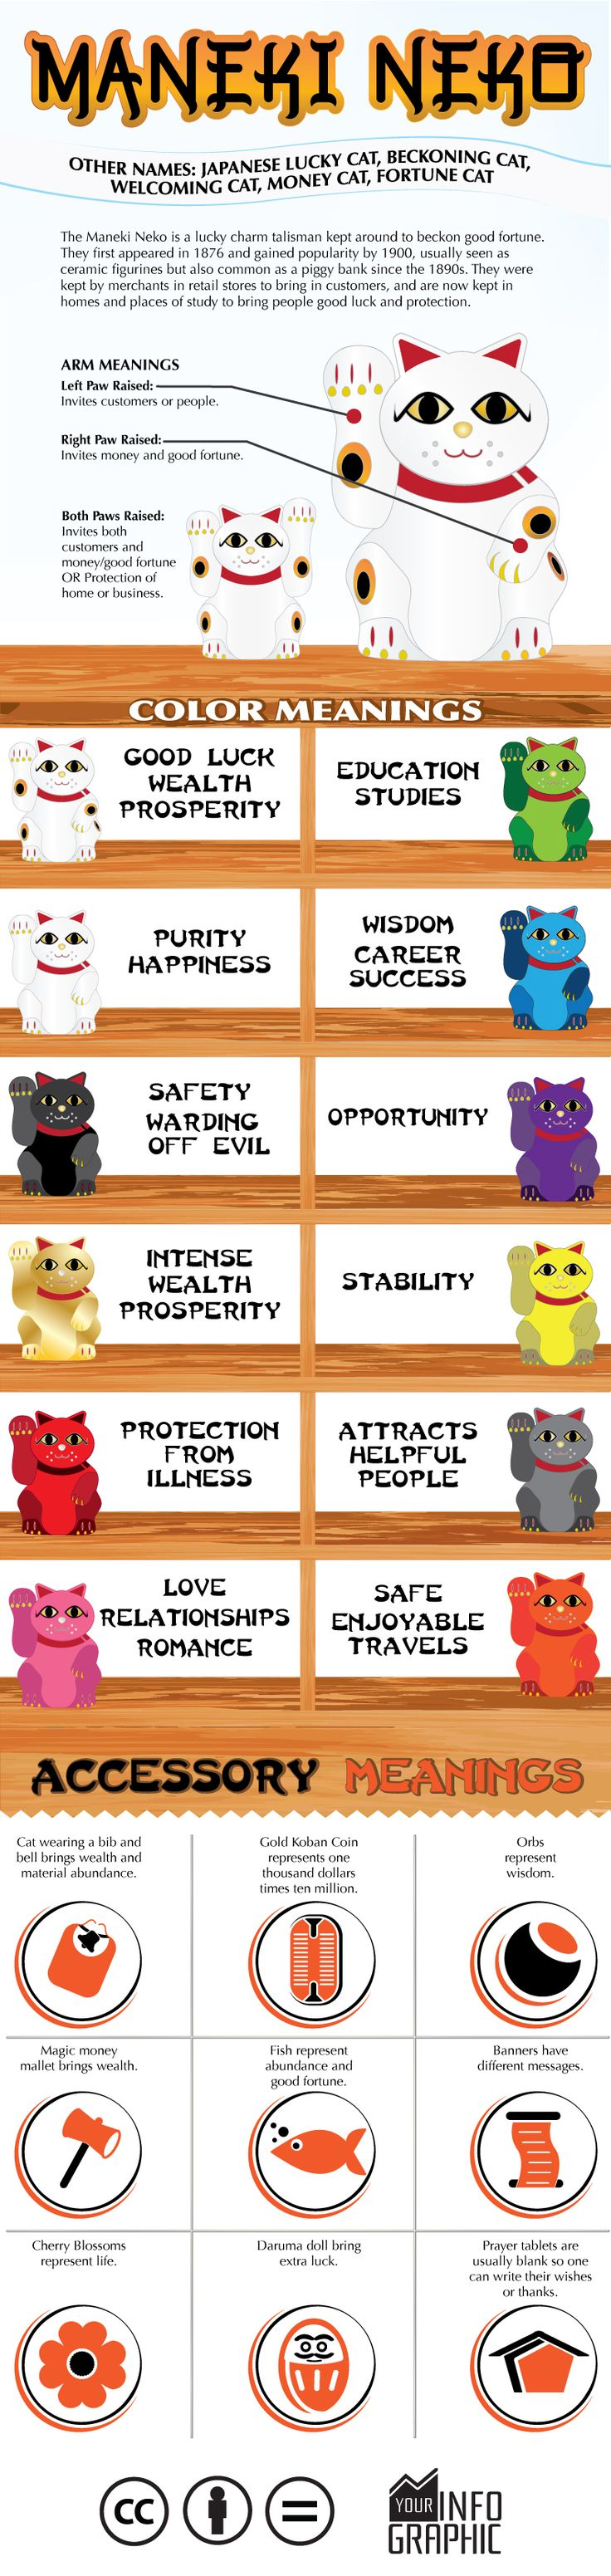 This infographic of Maneki Neko, Lucky Cat, shows the meanings of the lucky cat colors and accessories